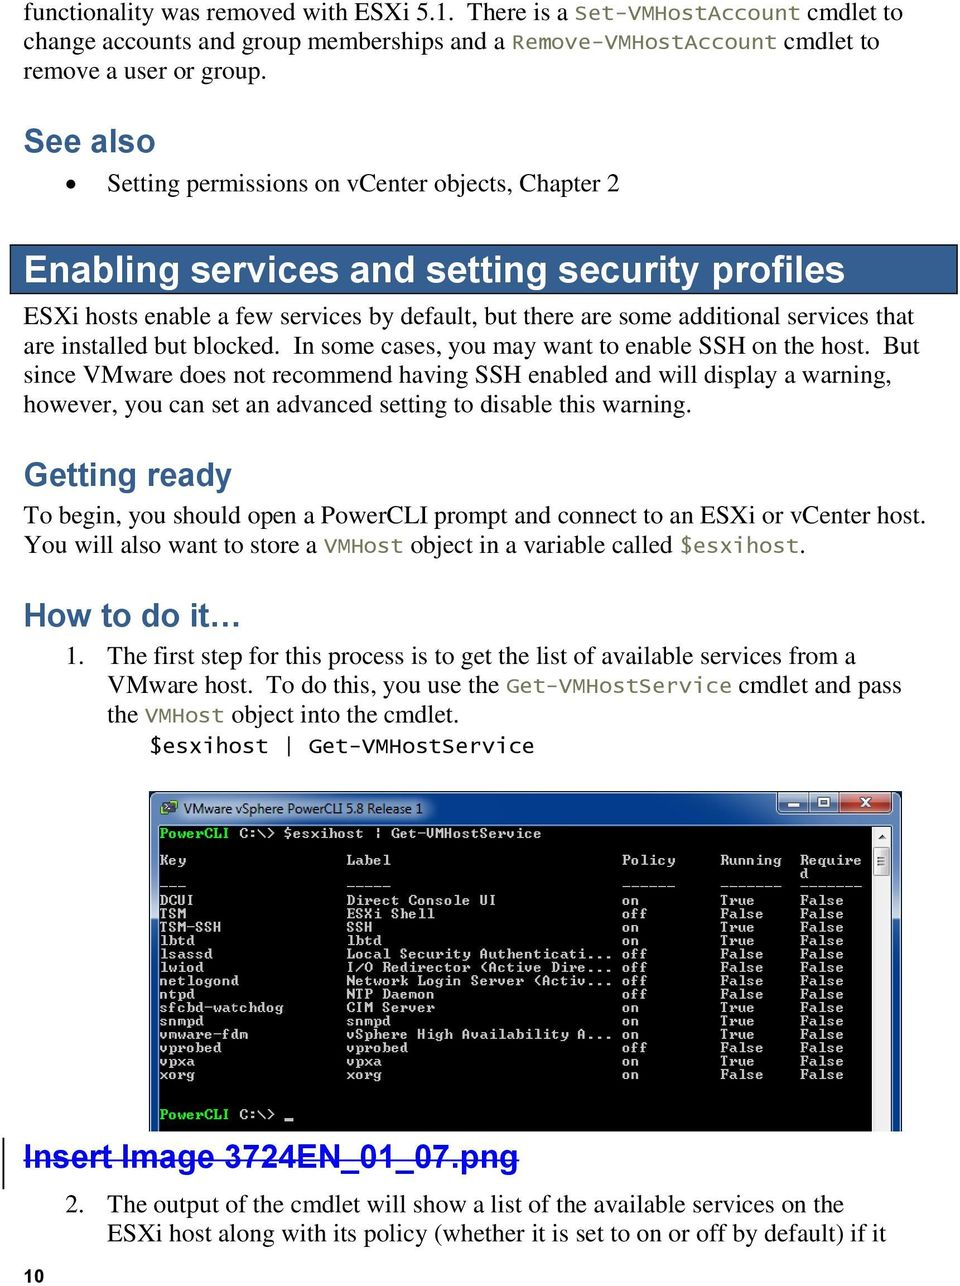 Configuring the Basic Settings of an ESXi Host with PowerCLI